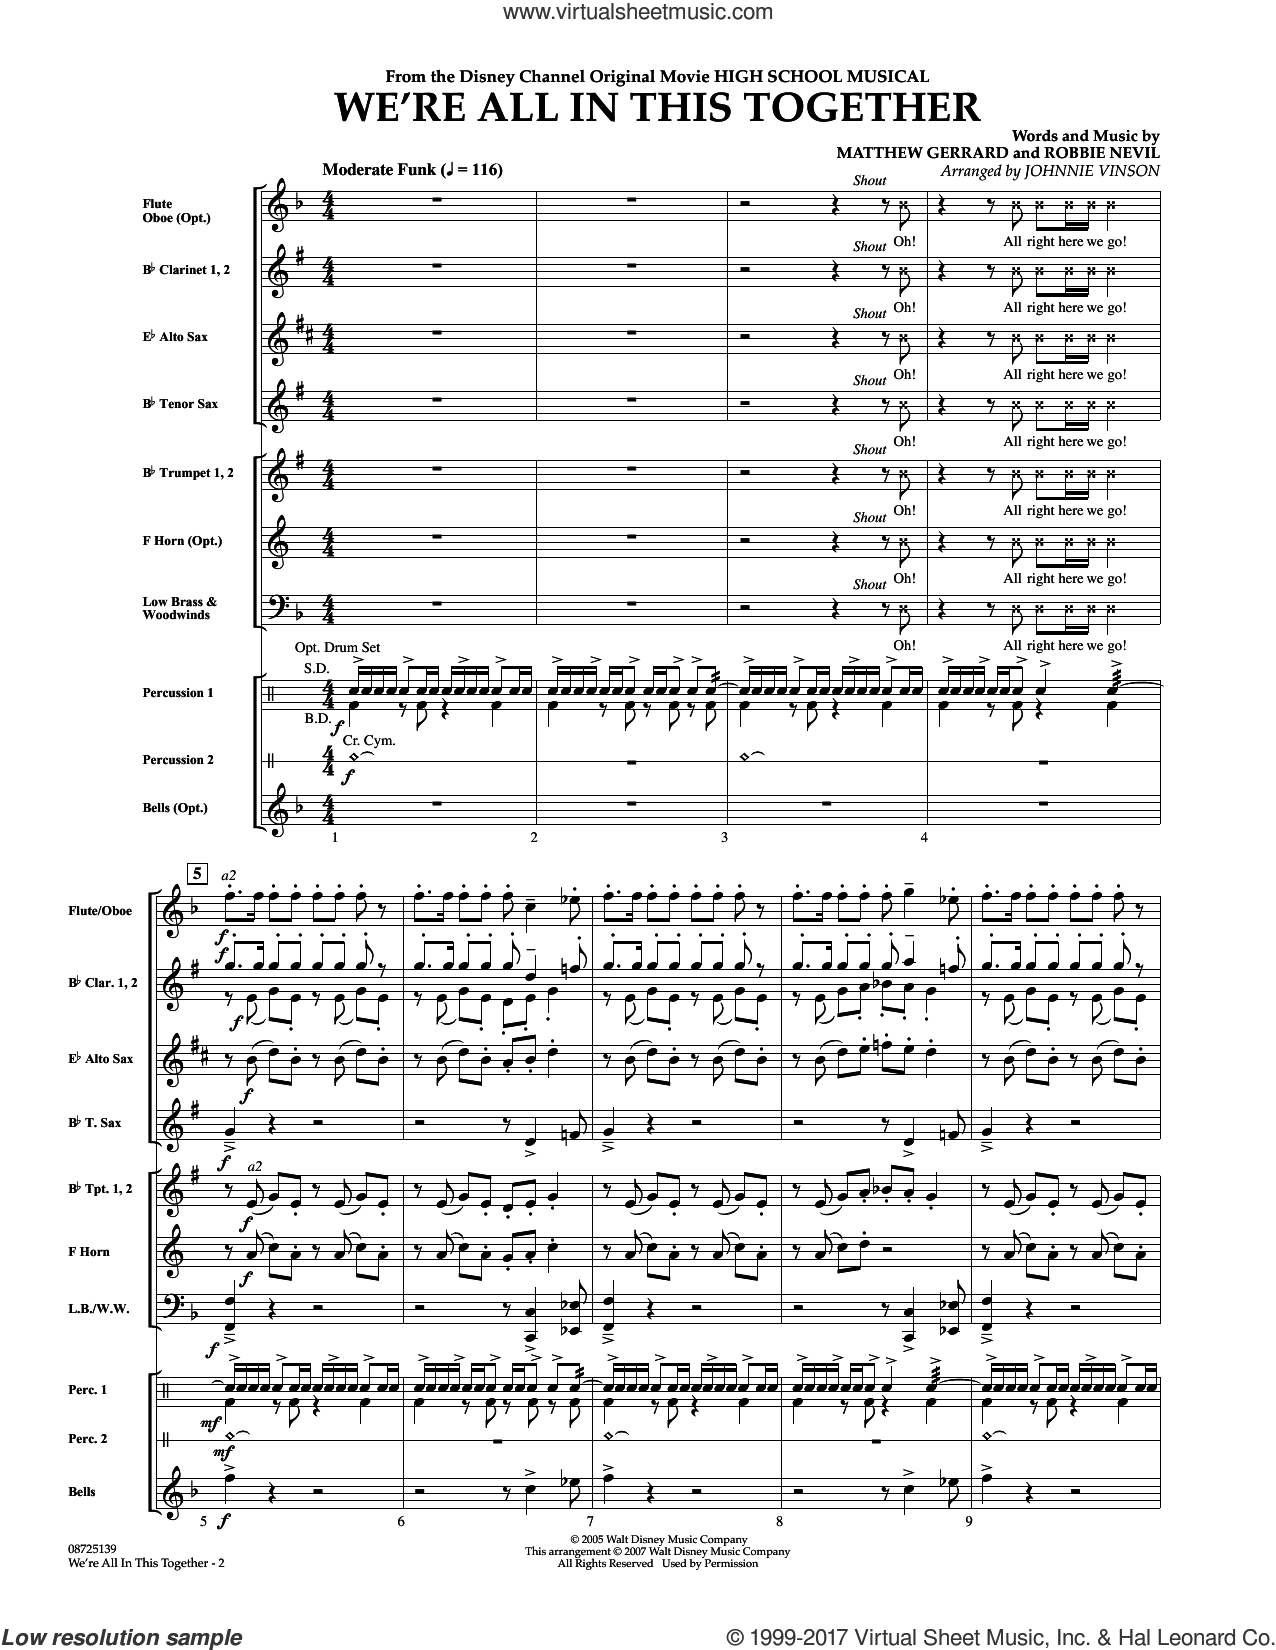 We're All In This Together (from High School Musical) (COMPLETE) sheet music for concert band by Matthew Gerrard, High School Musical Cast, Johnnie Vinson and Robbie Nevil, intermediate skill level